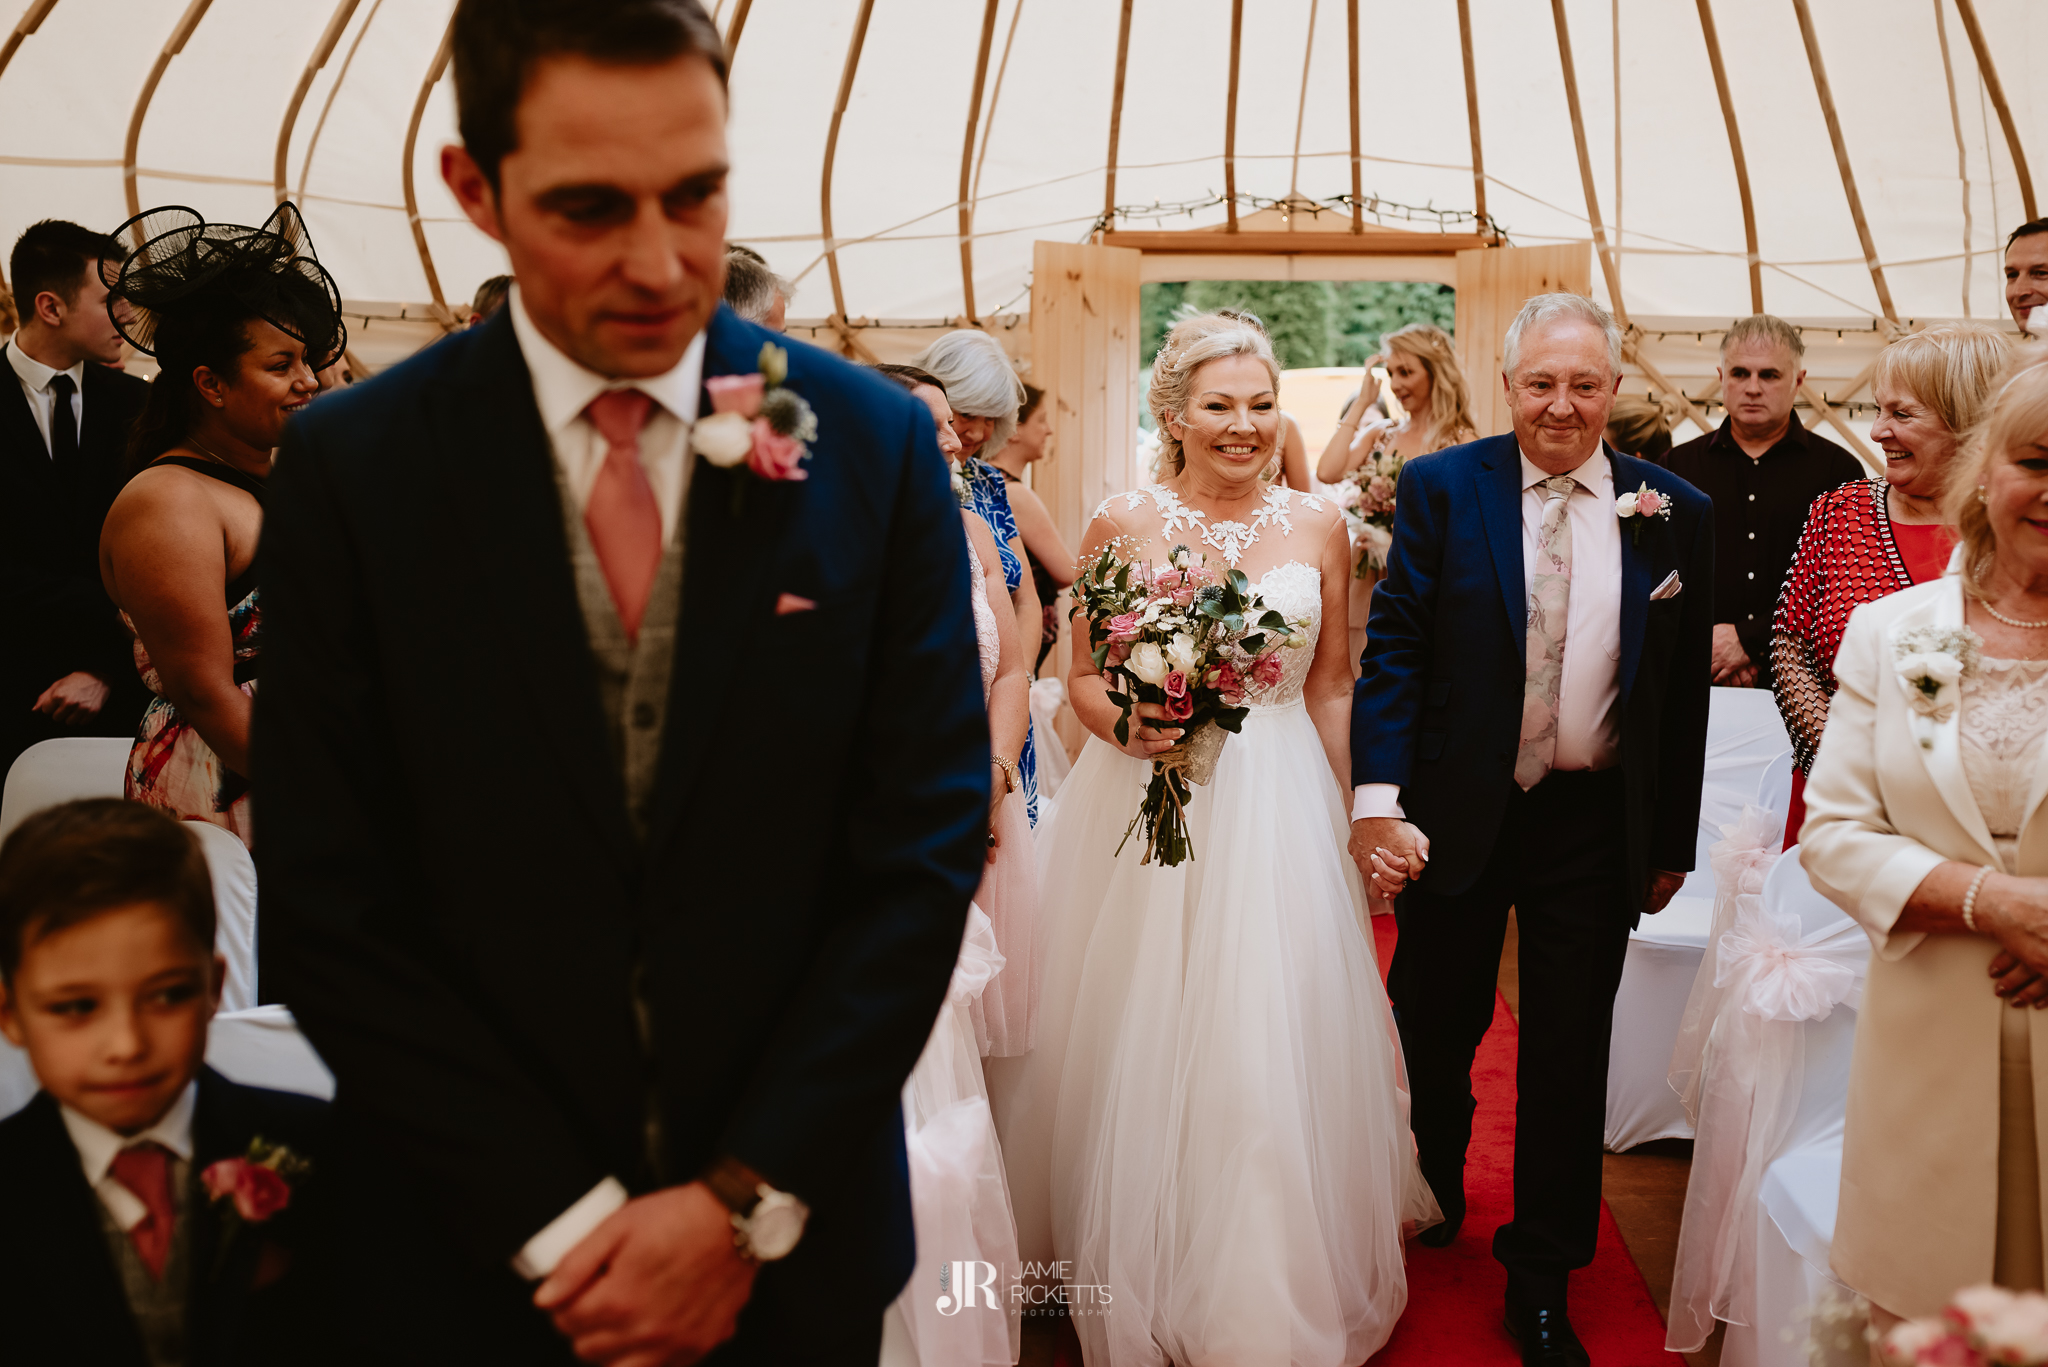 Wroxeter-Hotel-Wedding-Photography-In-Shropshire-By-Shropshire-Wedding-Photographer-Jamie-Ricketts-054.JPG